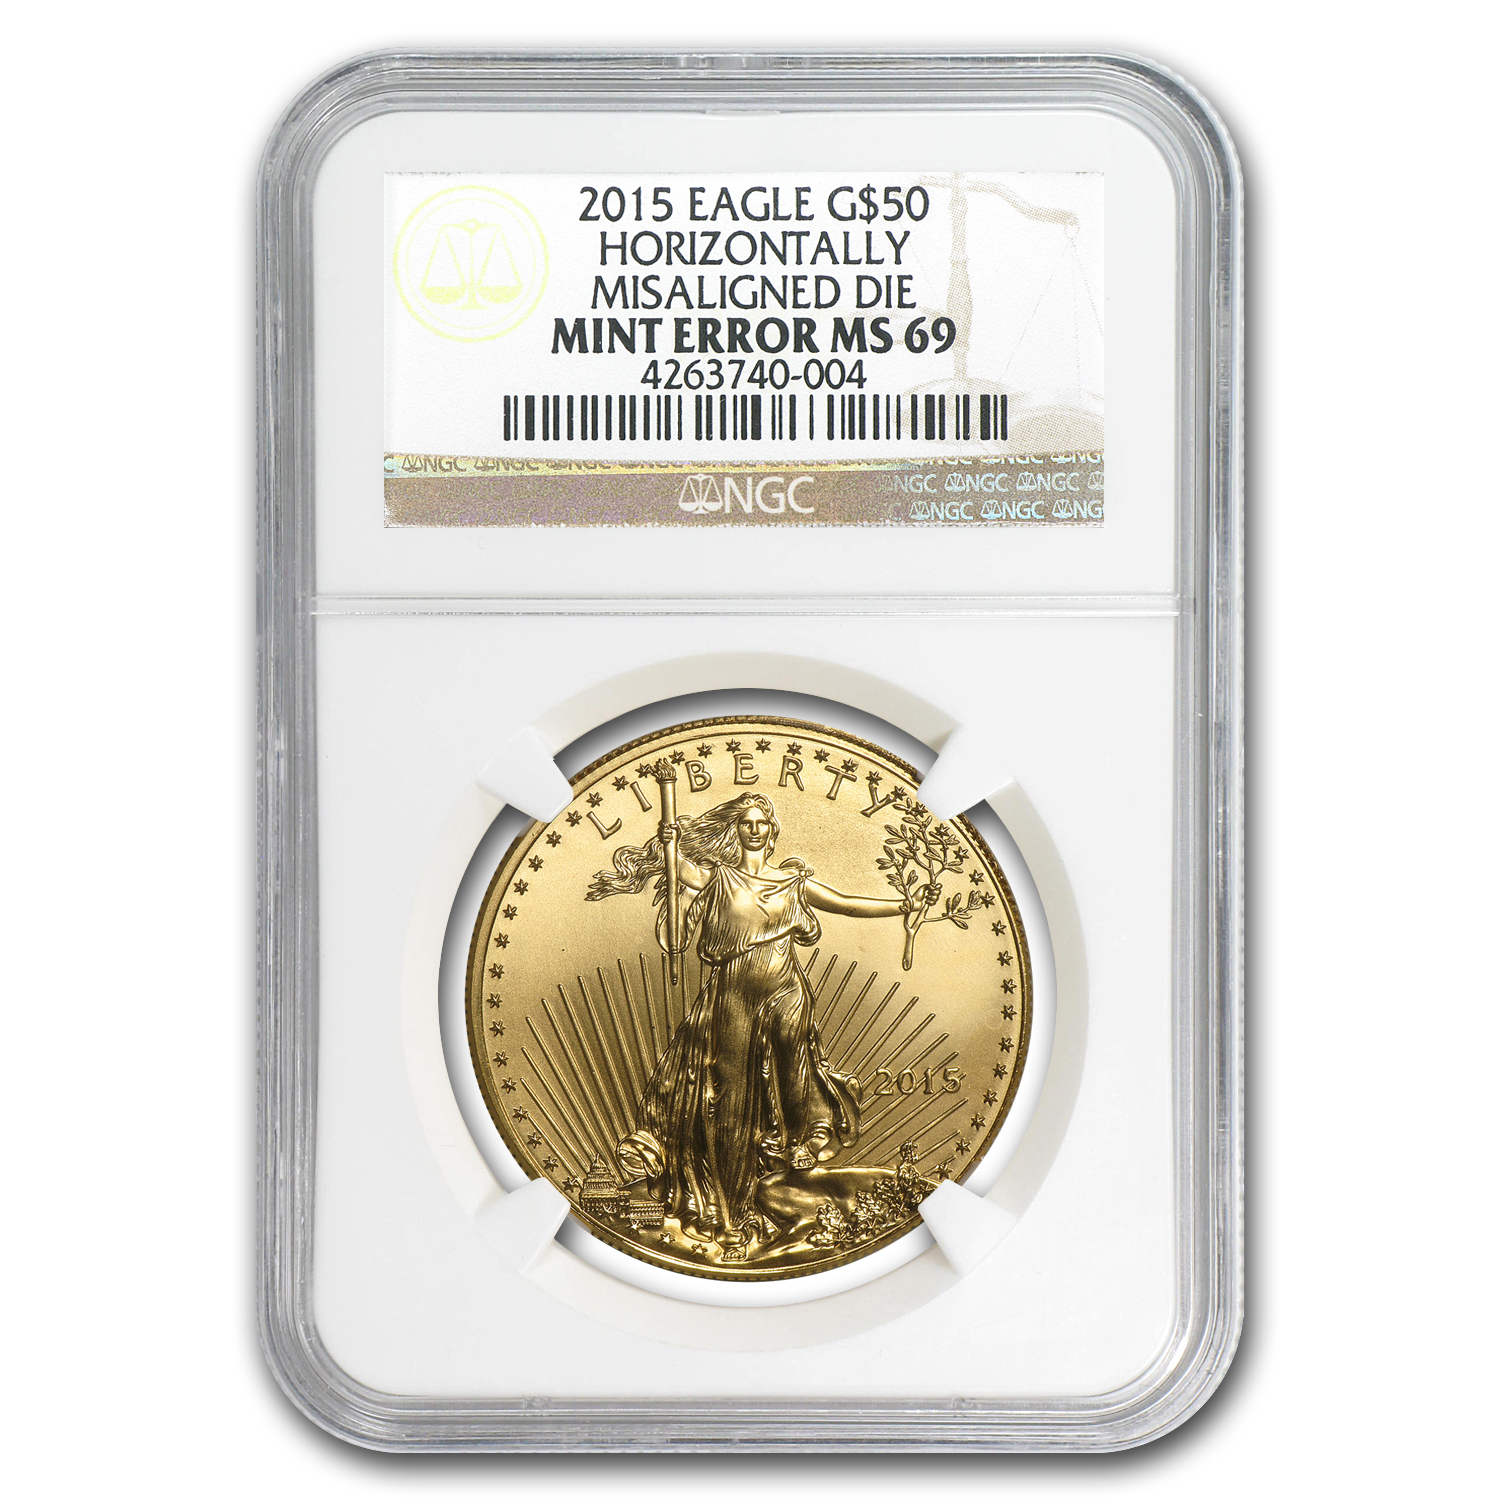 2015 1 oz Gold Eagle Major Mint Error MS-69 NGC (MISALIGNED DIE)